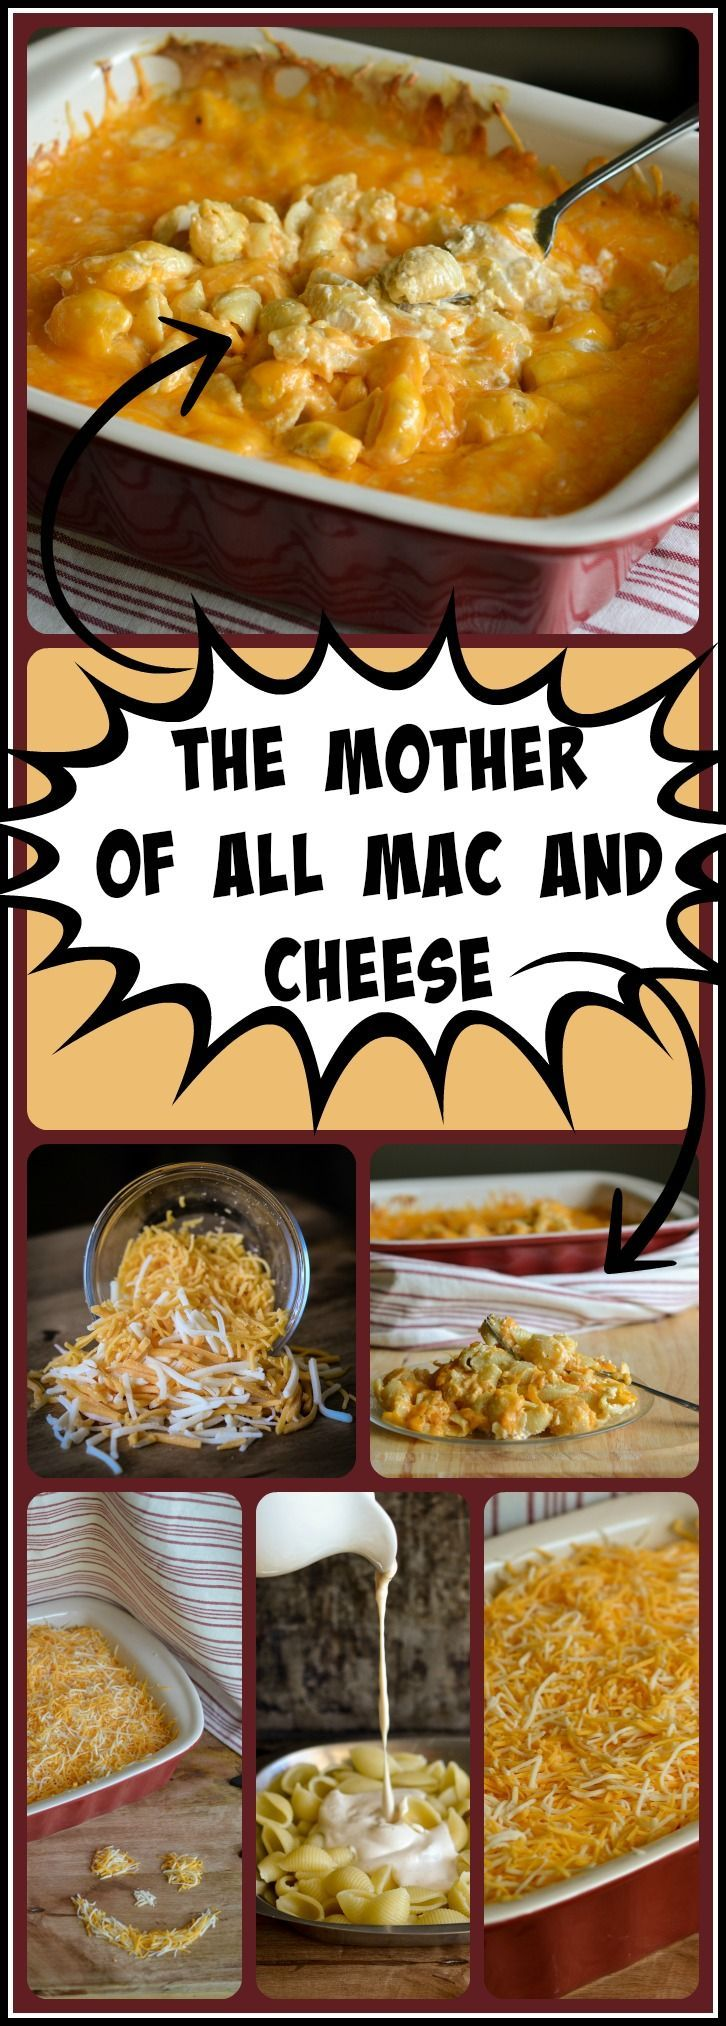 This easy to make mac and cheese is creamy on the inside and has an irresistible gooey layer of melted cheeses on top!